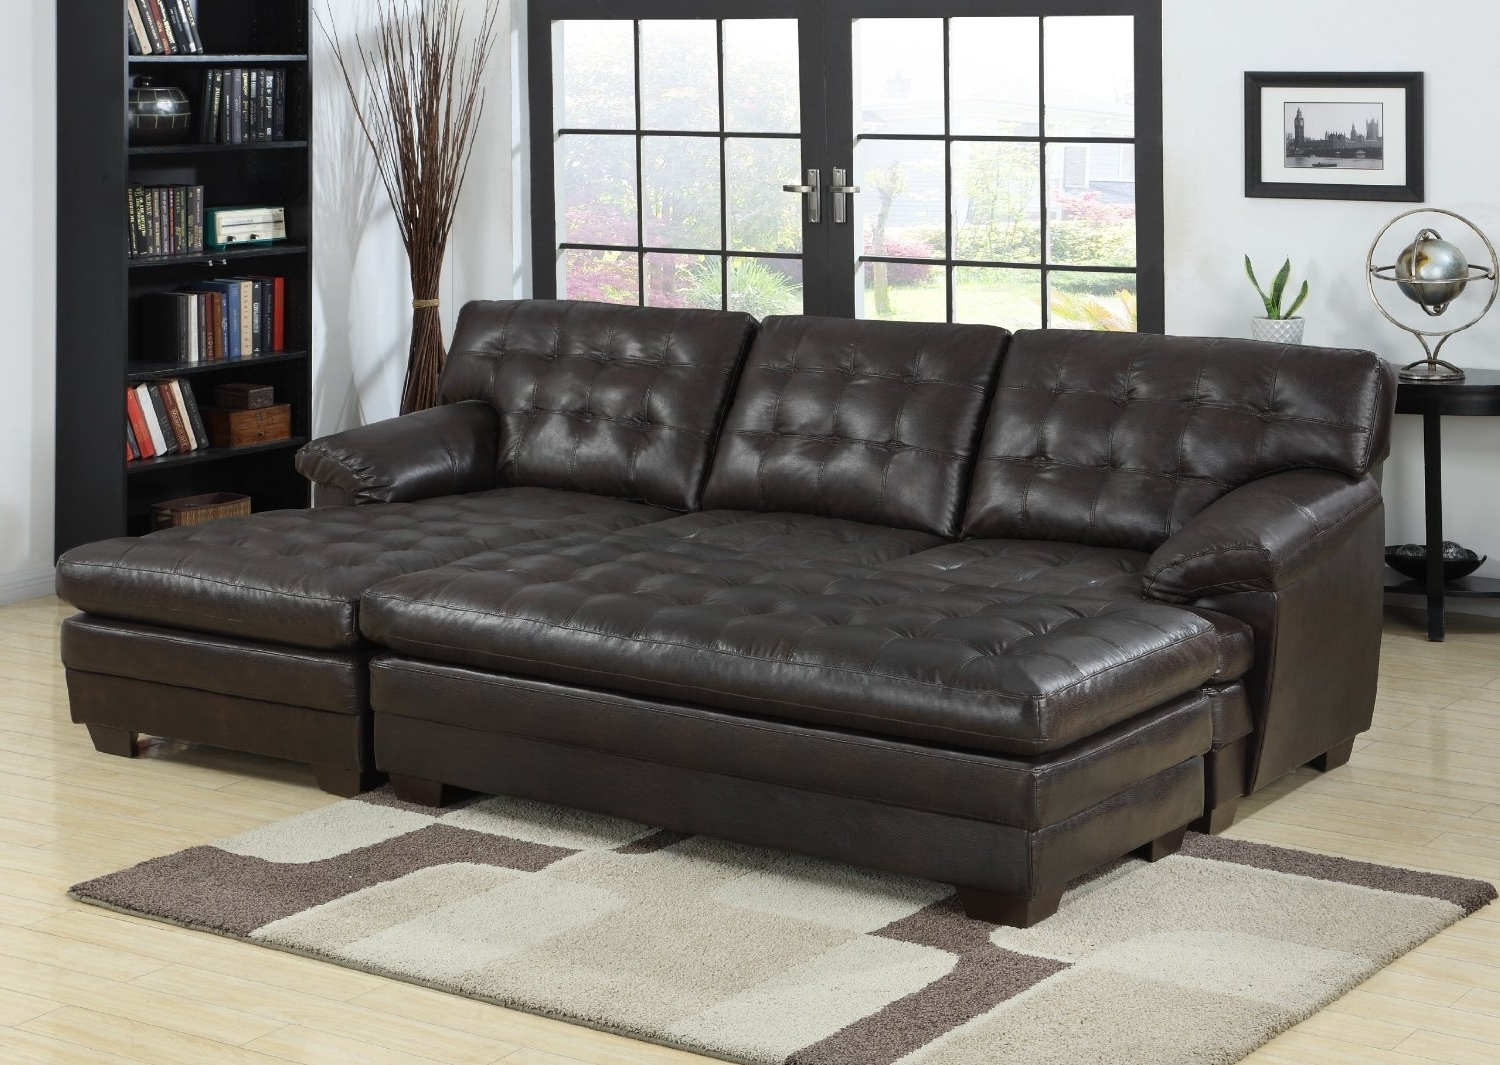 The Comfortable Chaise Lounge Sofa — The Home Redesign Intended For Recent Chaise Lounge Couches (View 14 of 15)